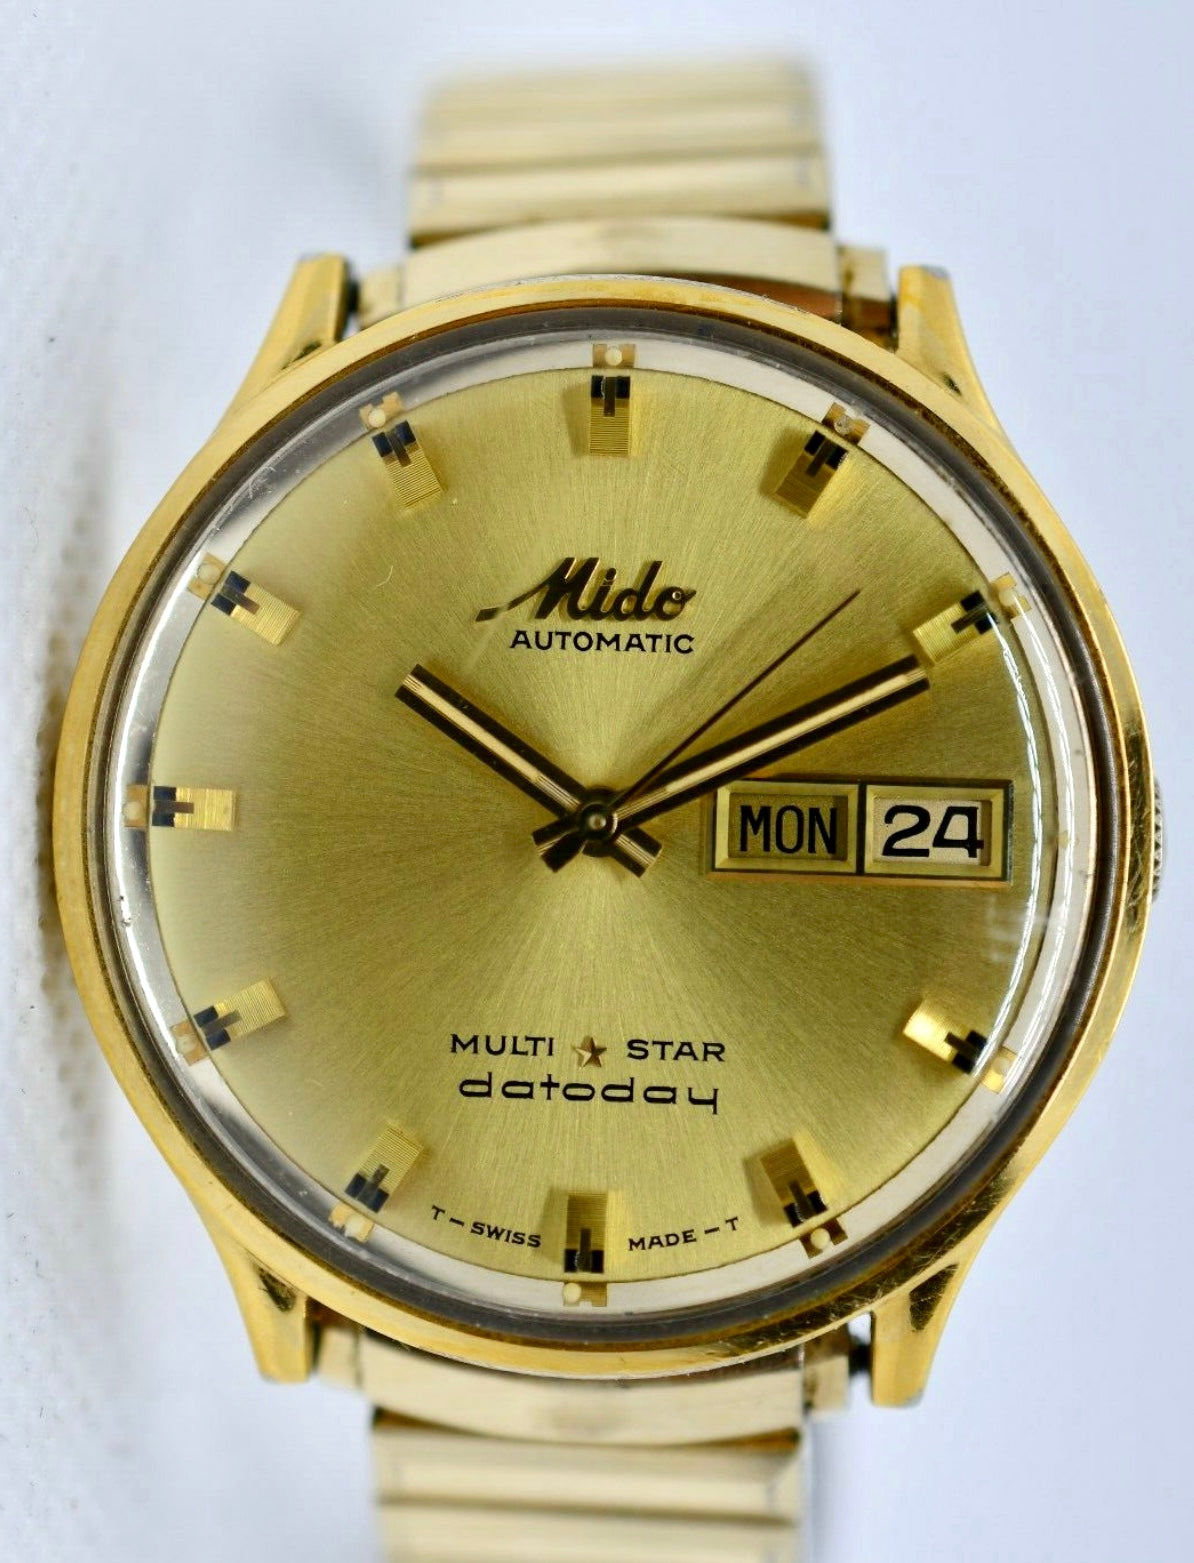 Mido Multi Star Datoday Automatic (24k Gold plated)